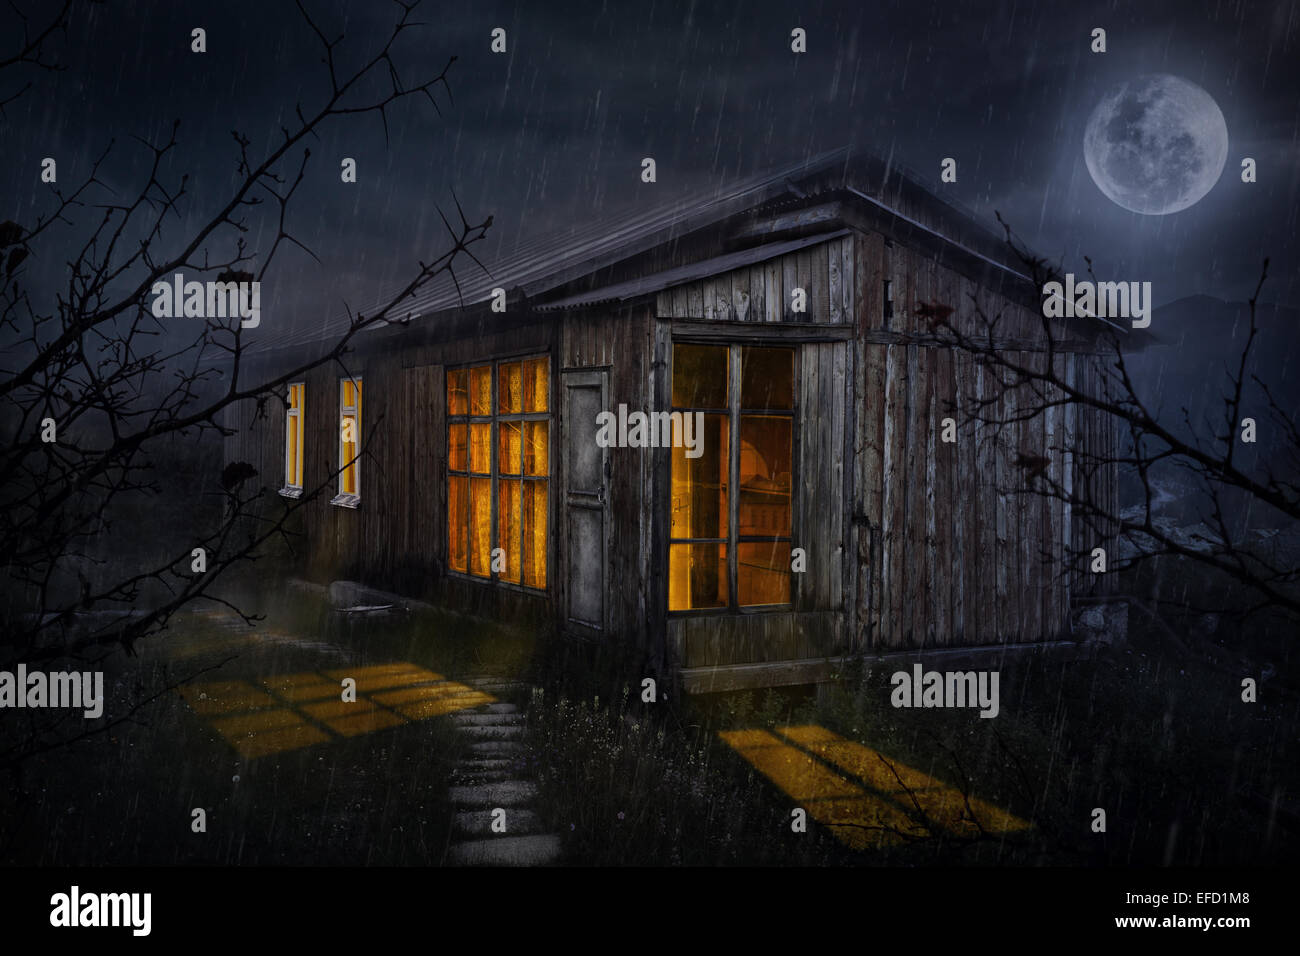 Rural house with glowing windows at night sky with moon - Stock Image